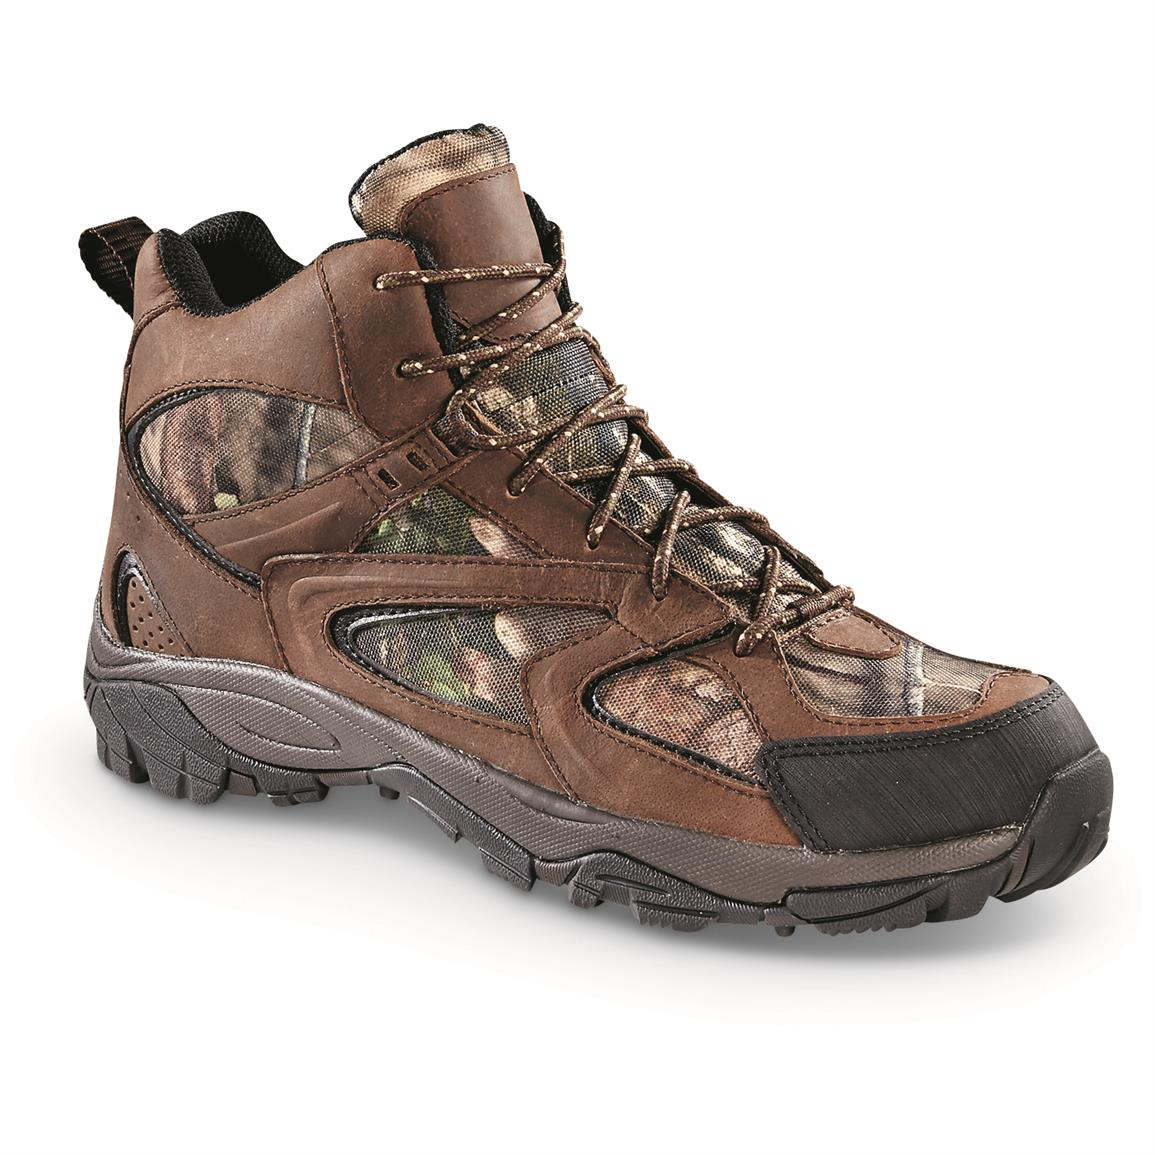 Guide Gear Men's Arrowhead Hiking Boots, Waterproof, Mossy Oak Break-Up Country